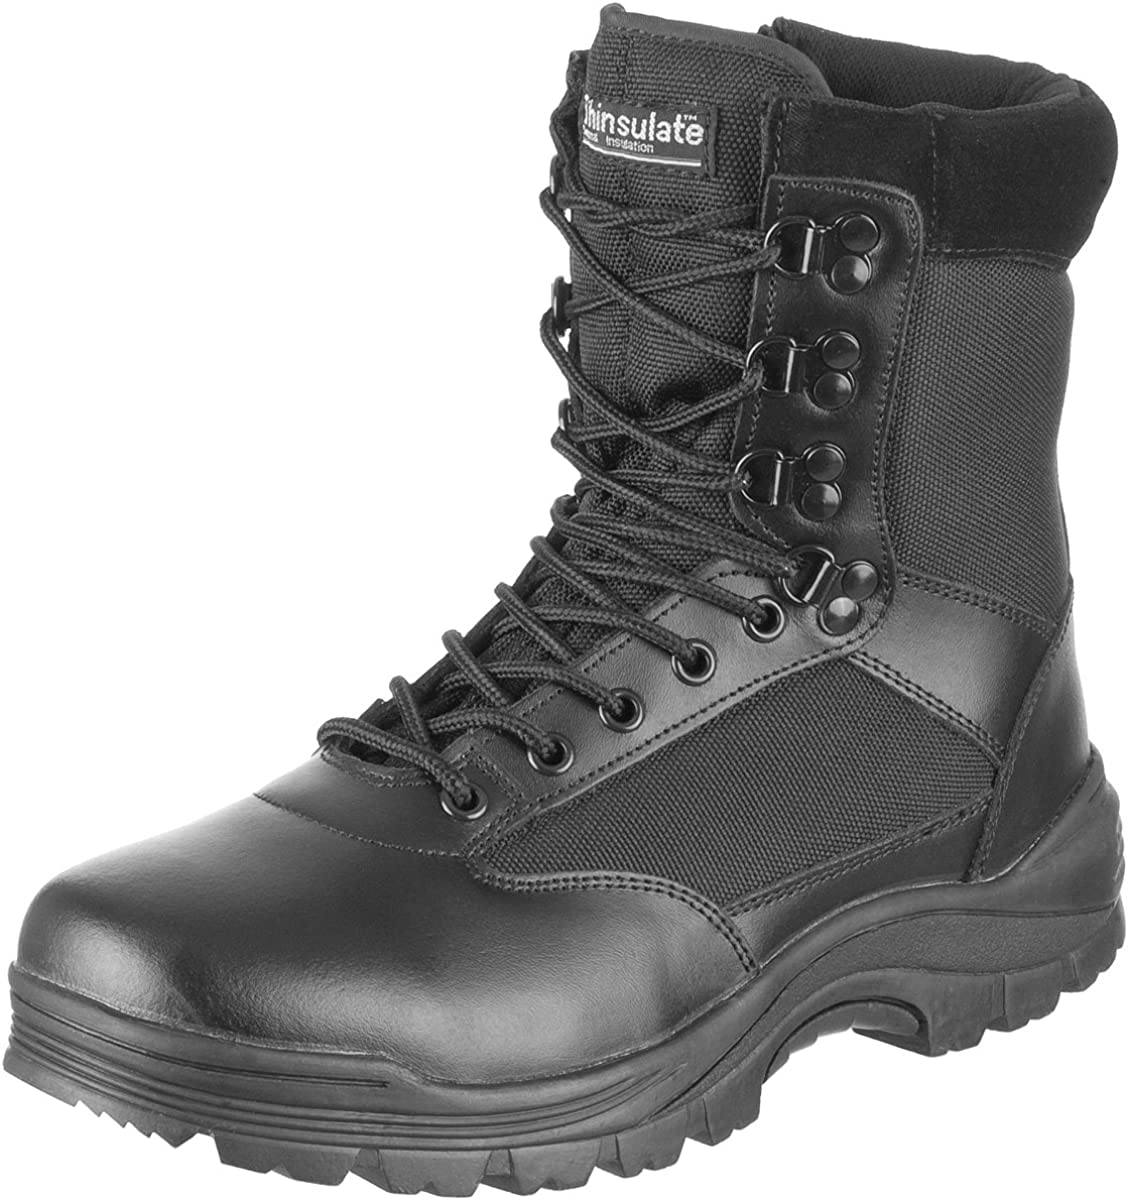 Mil-Tec Tactical Side Zip Fees free Sale Special Price Boots 10 US Size Black